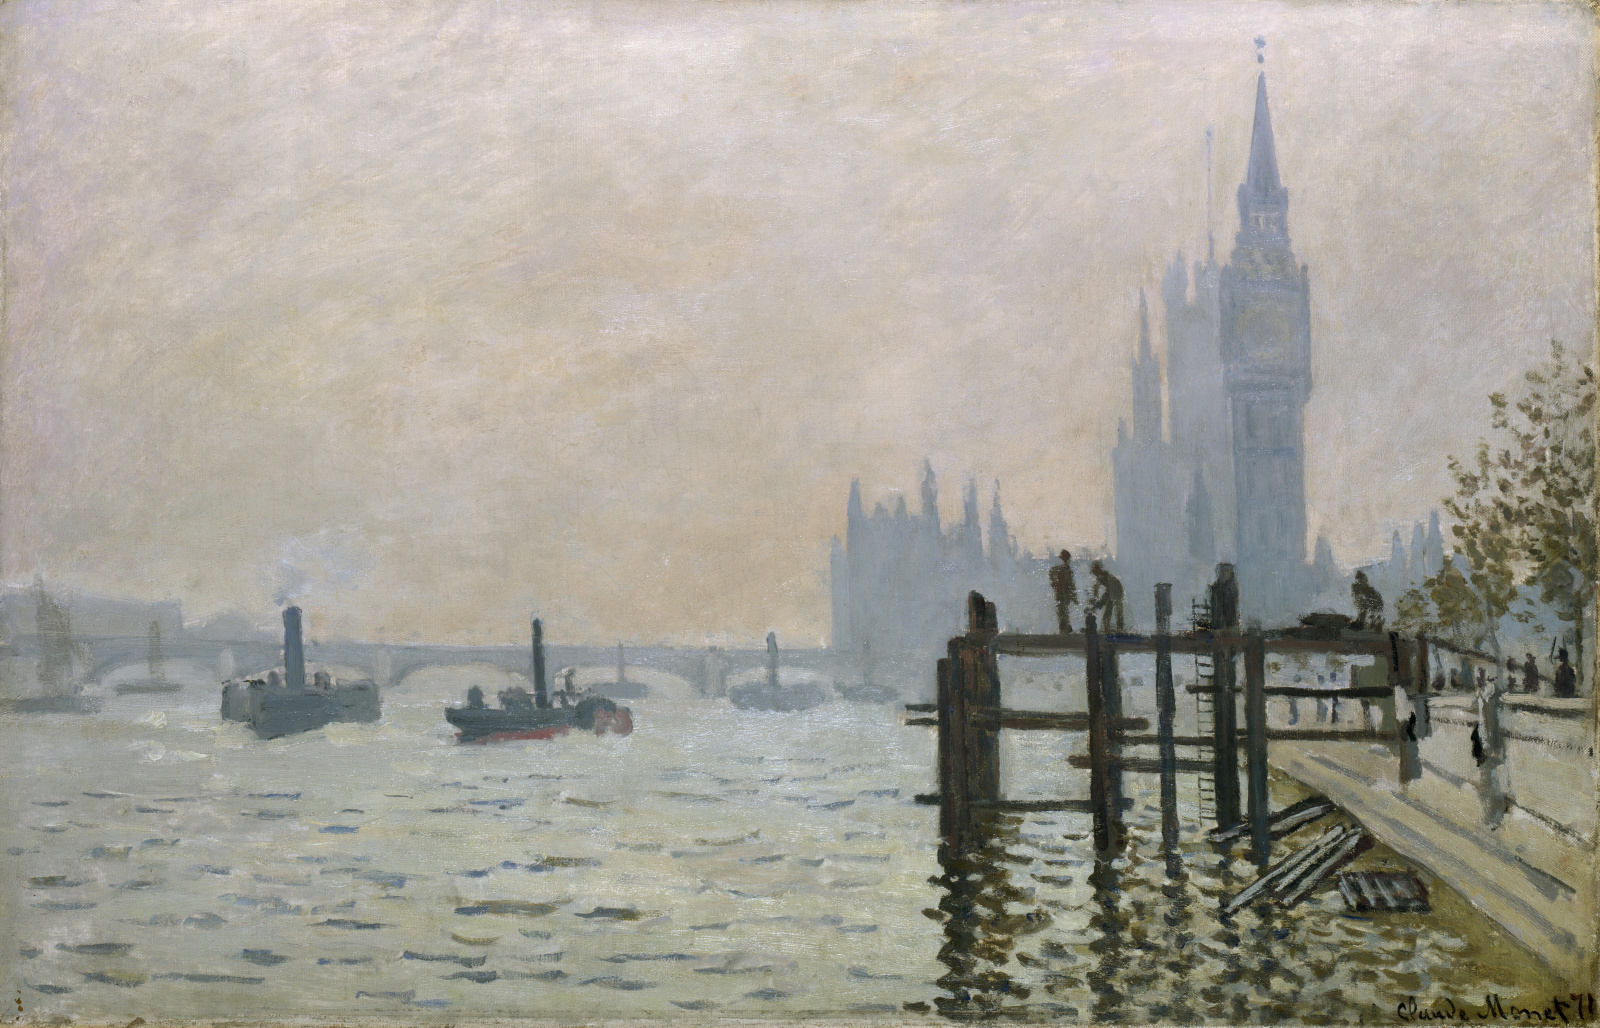 The Thames at Westminster by Claude Monet: History, Analysis & Facts